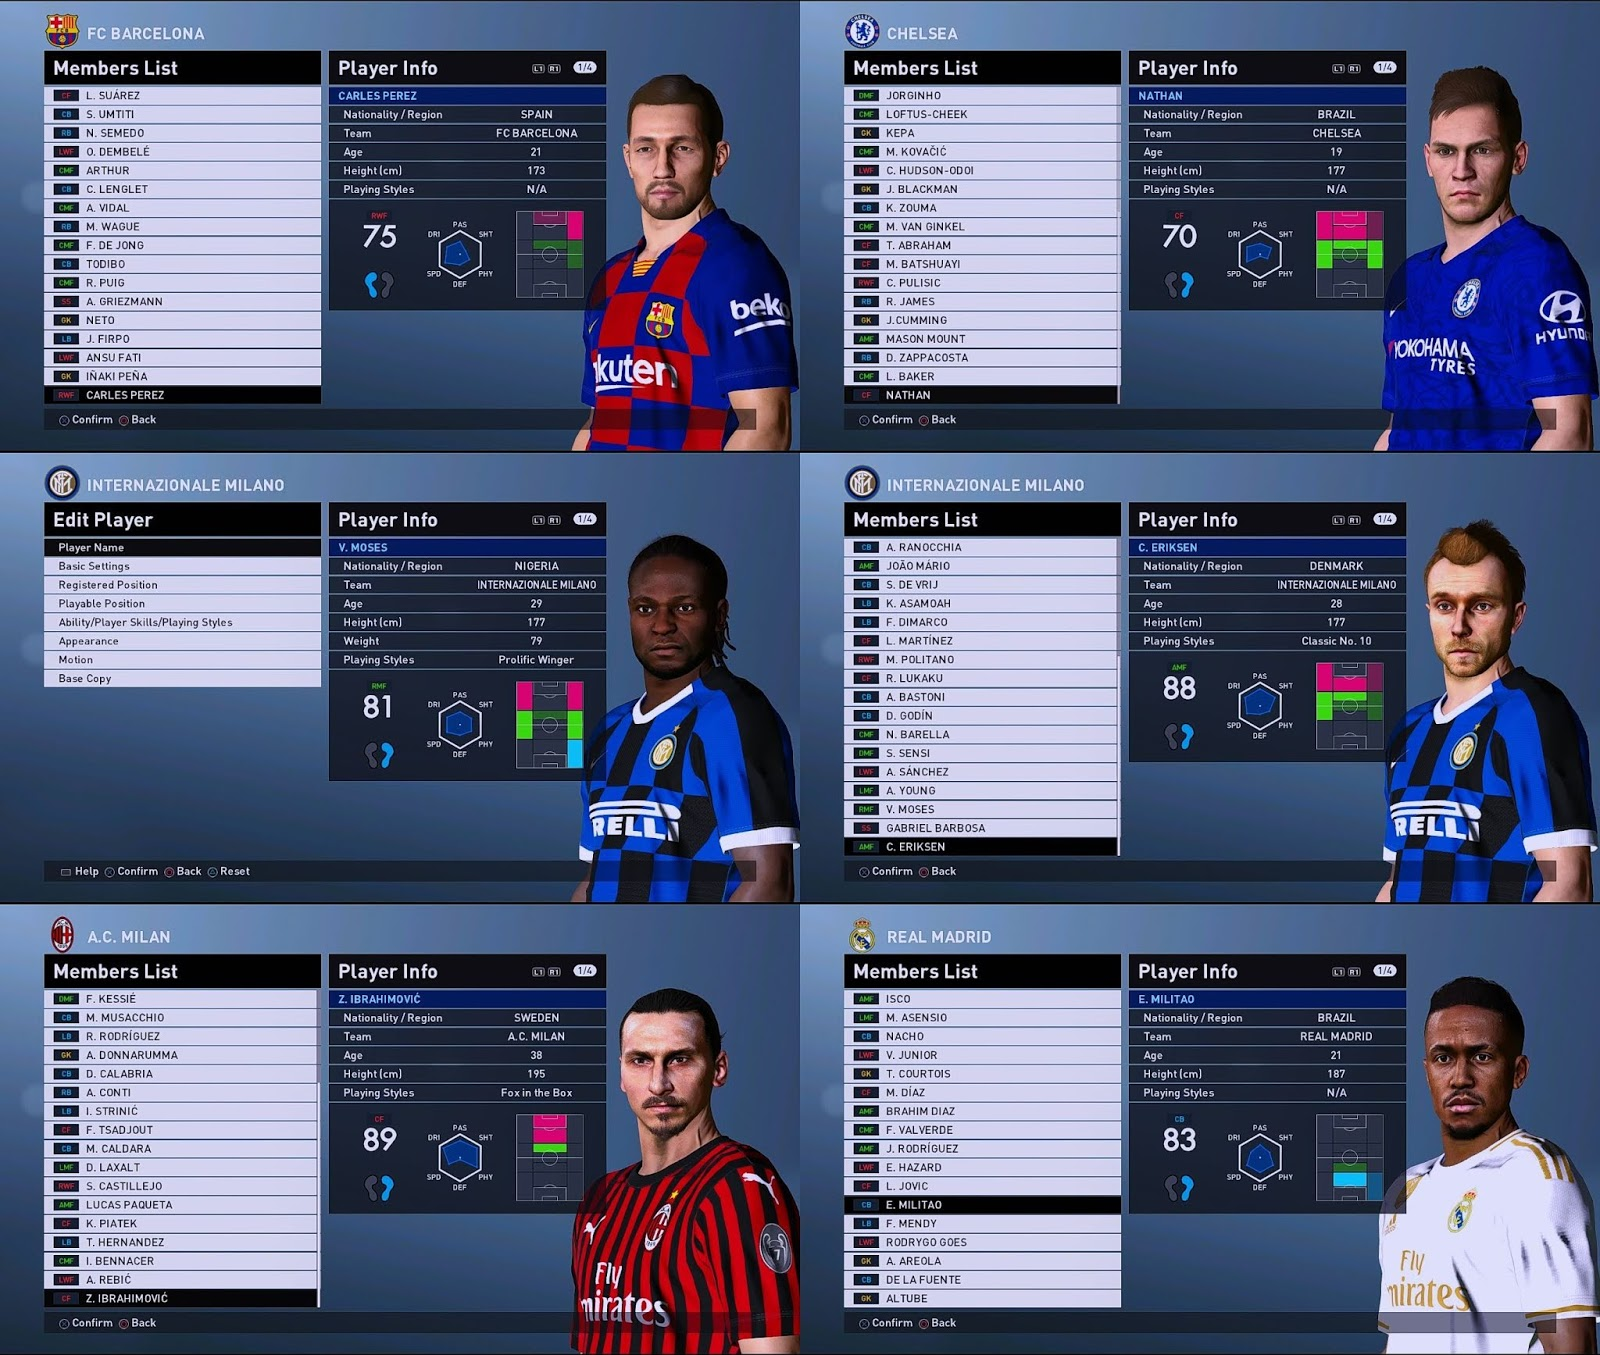 PES 2016 Option File PES Professionals Patch 2016 Season 2019/2020